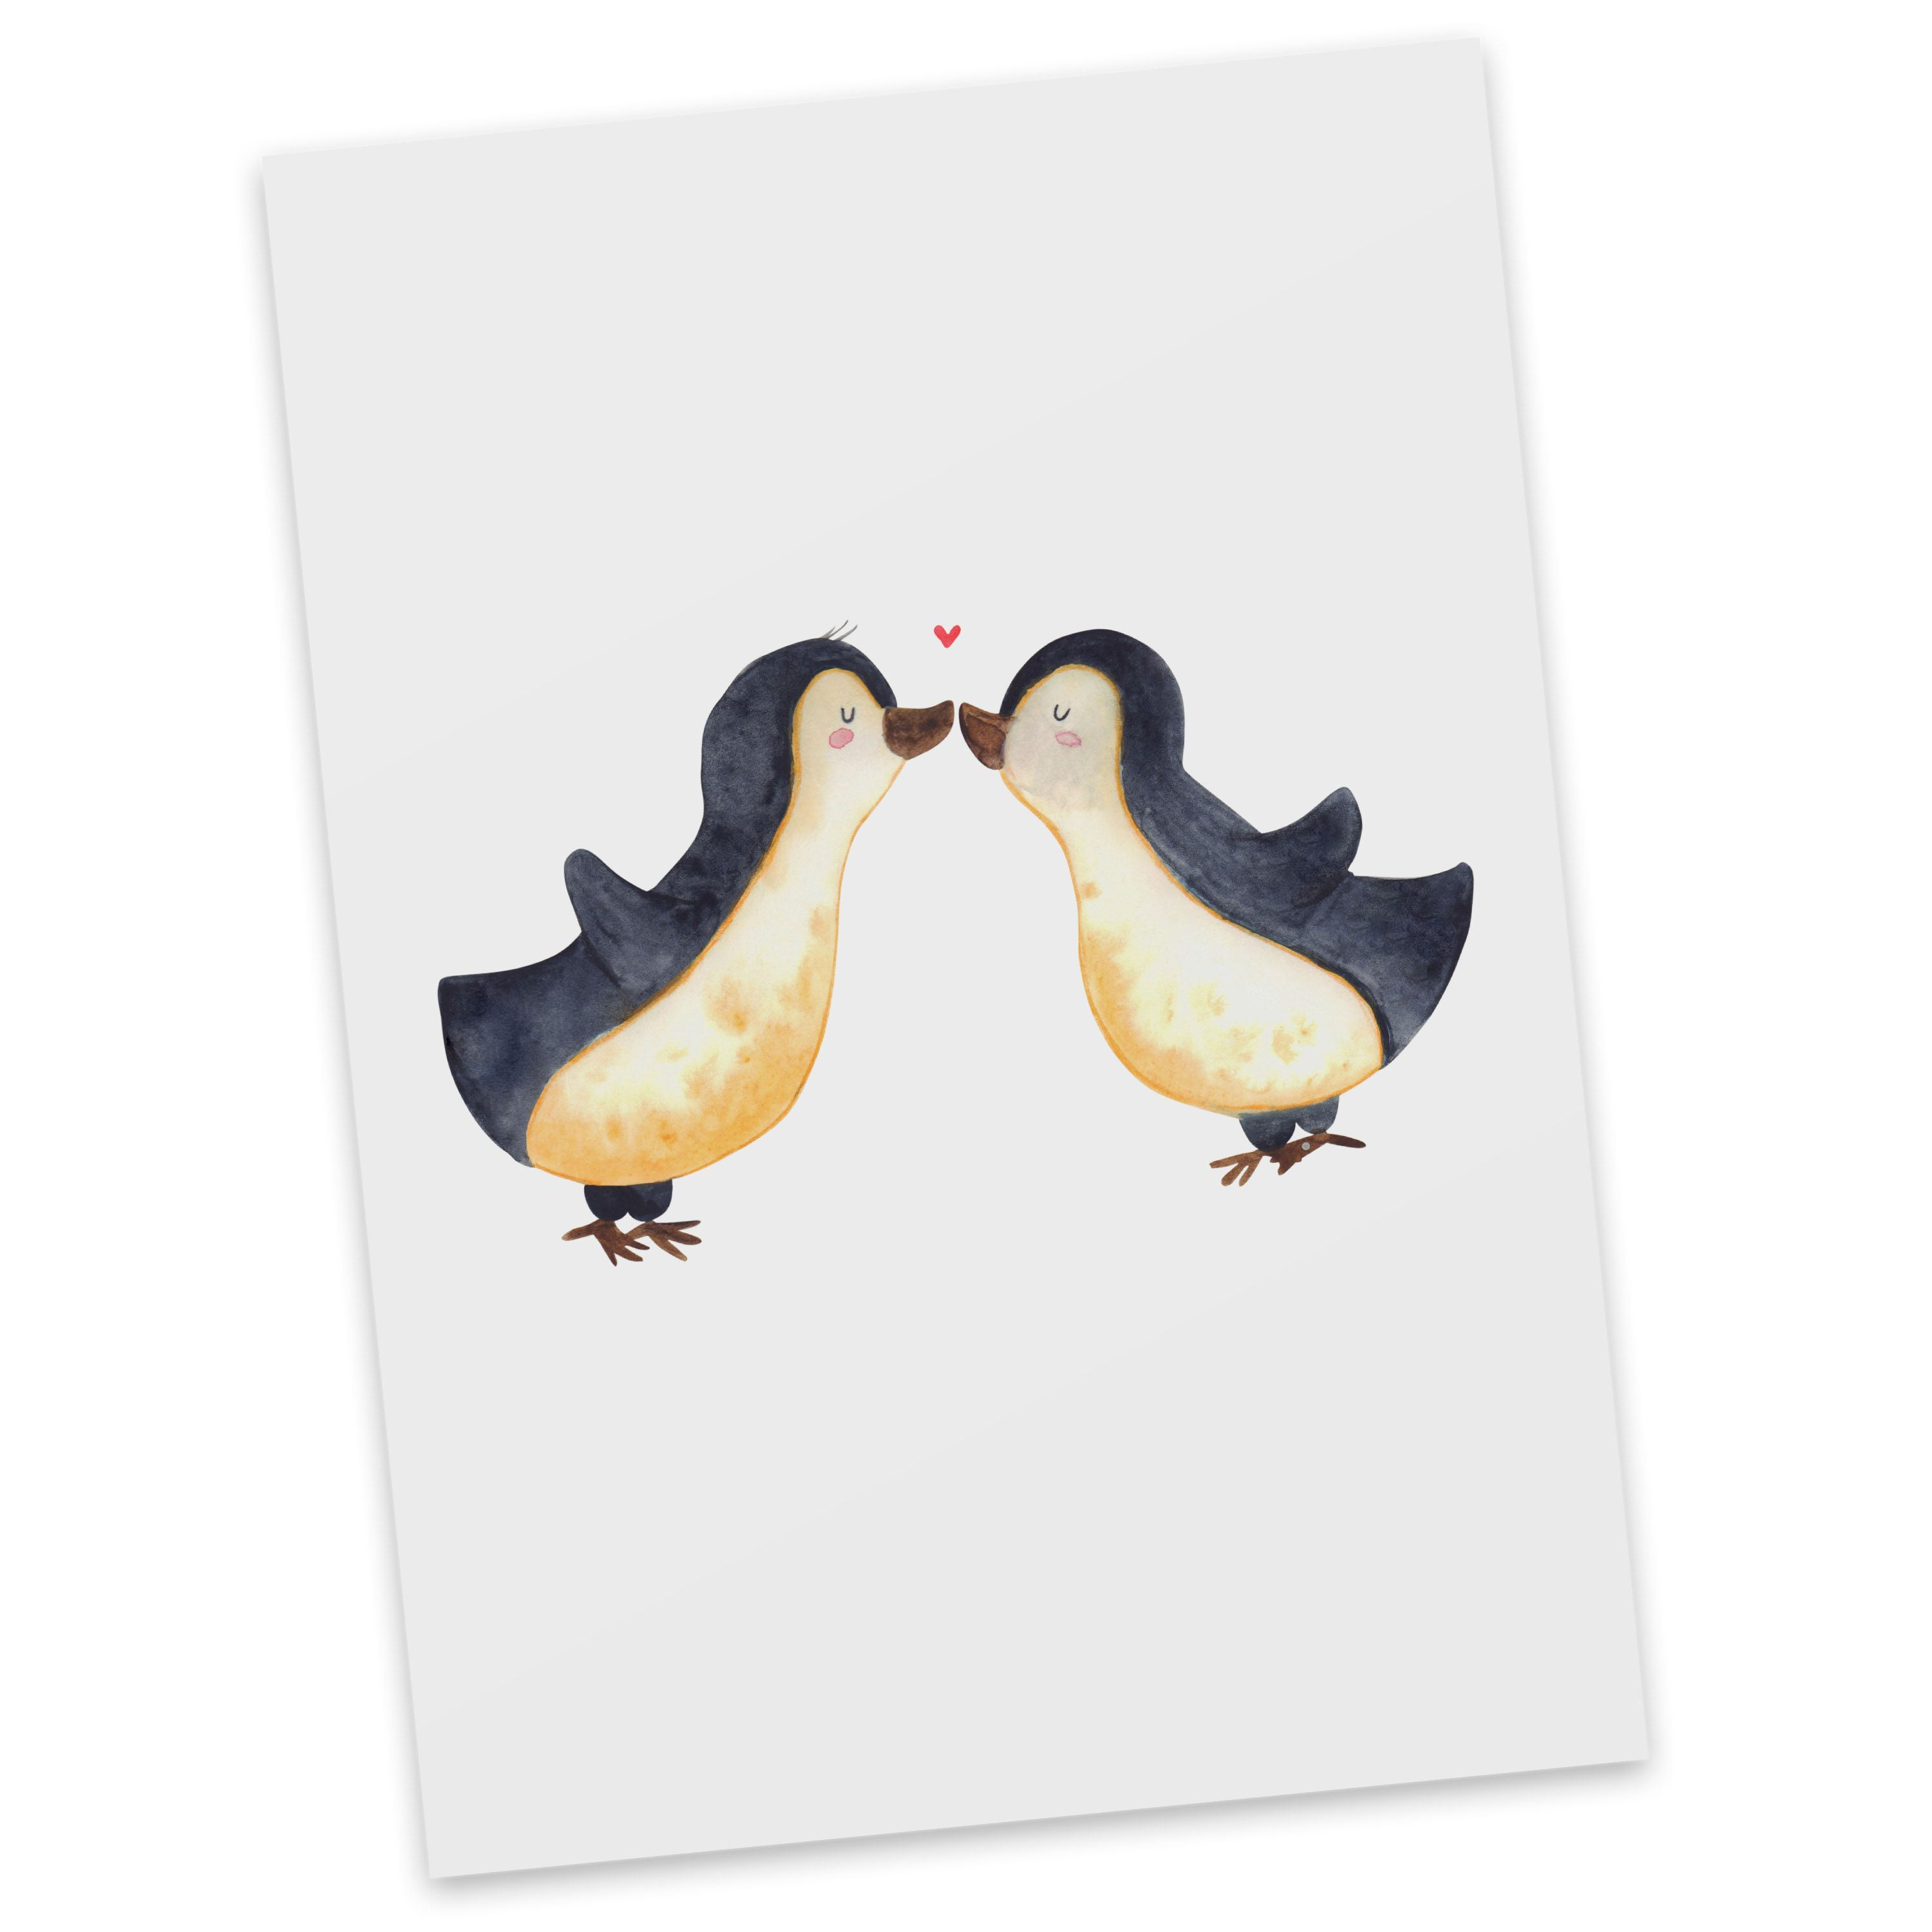 Postkarte Pinguin Liebe | Pinguin liebe, Postkarten, Poster